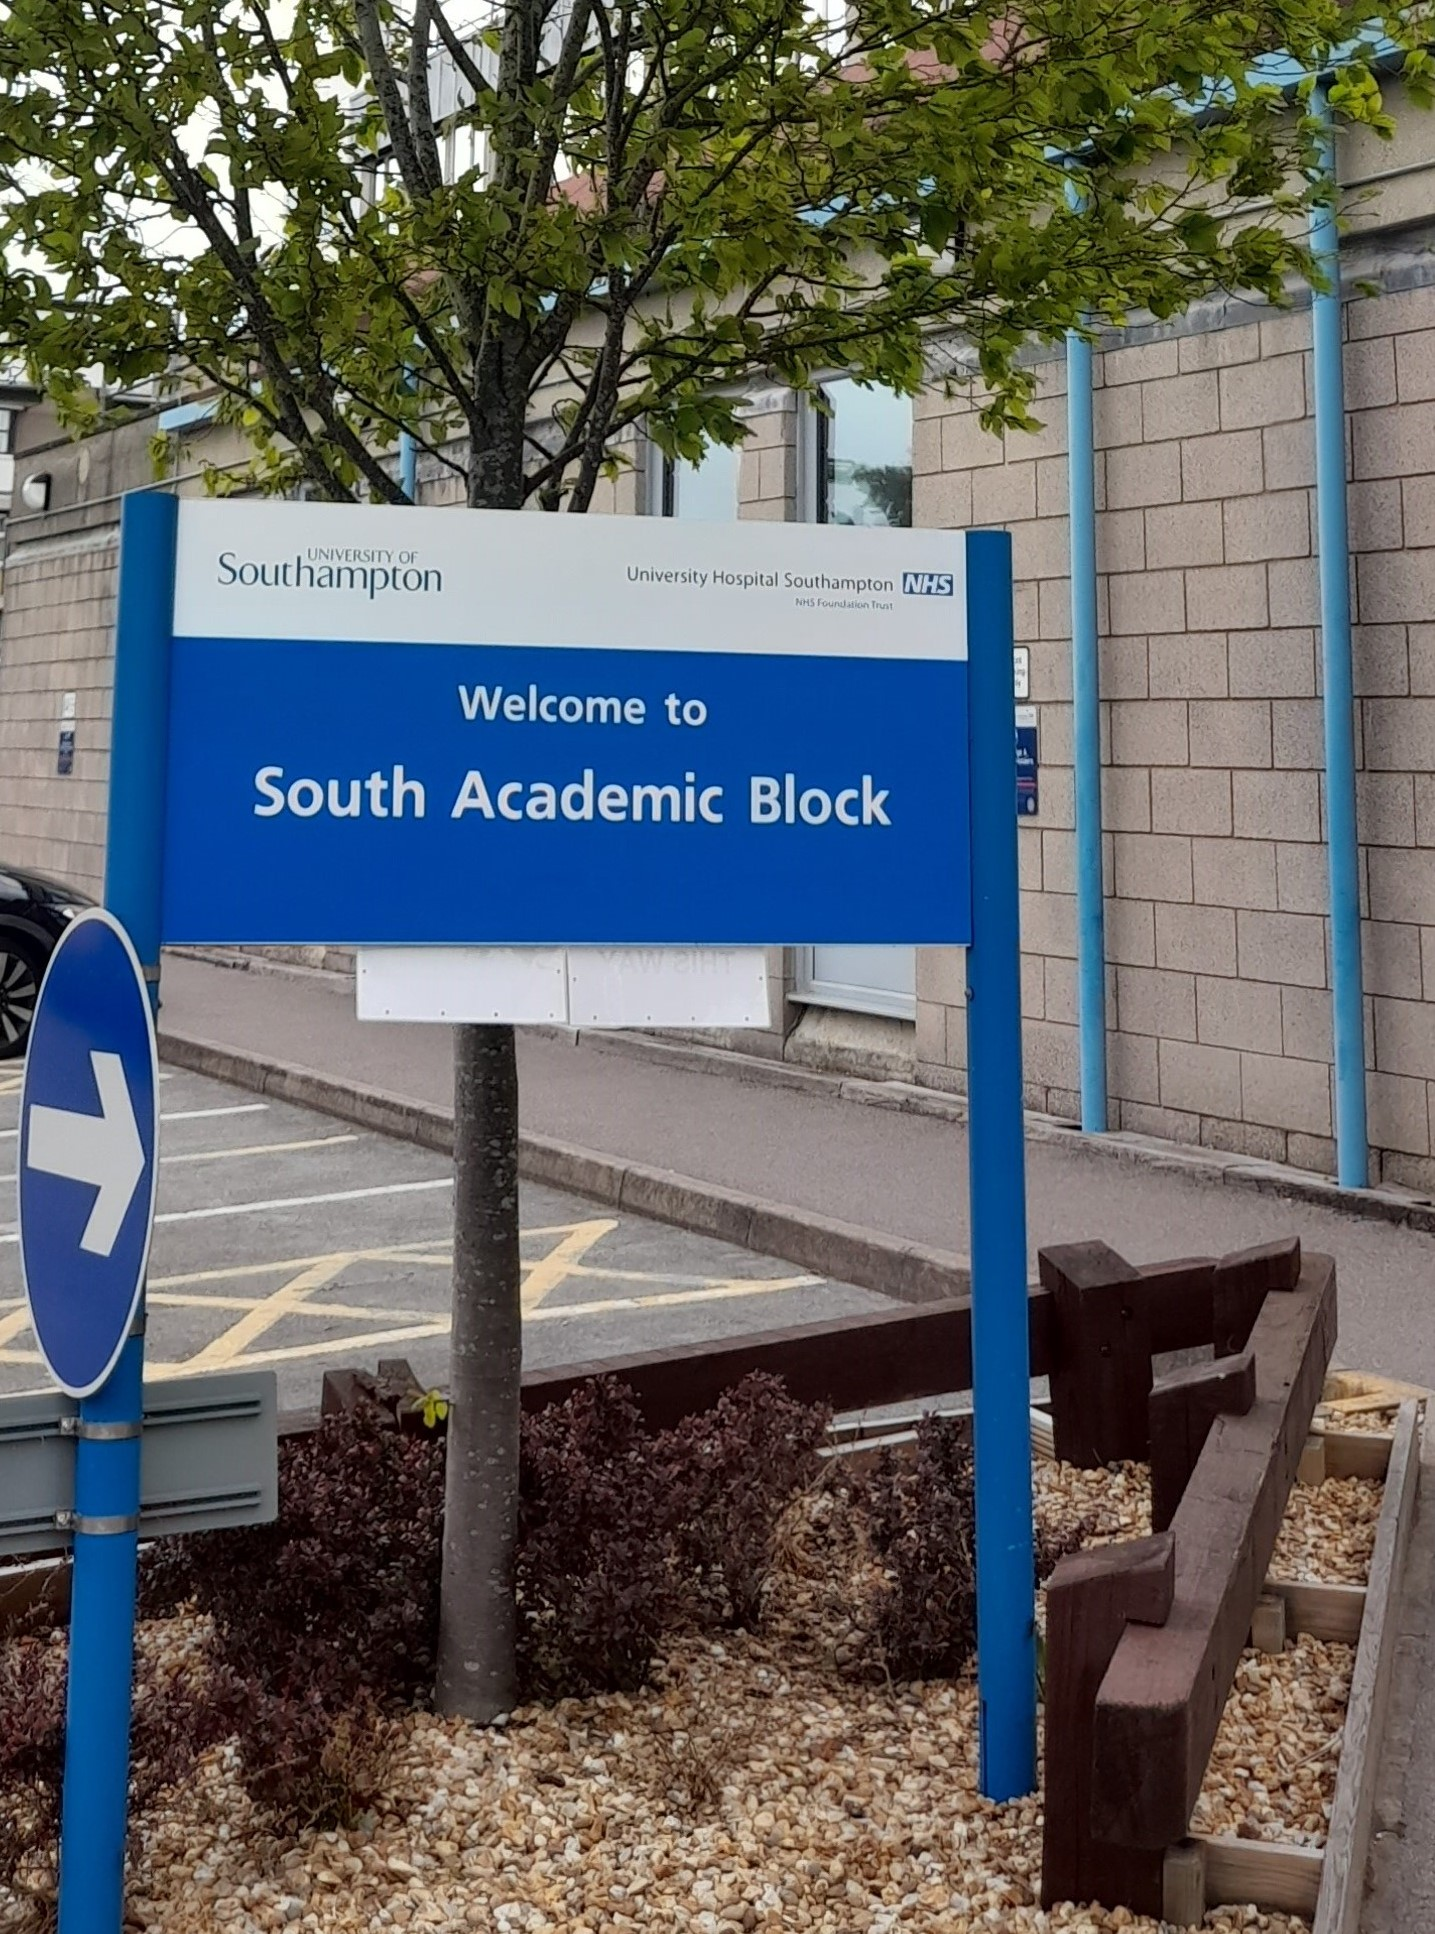 The South Academic Block entrance